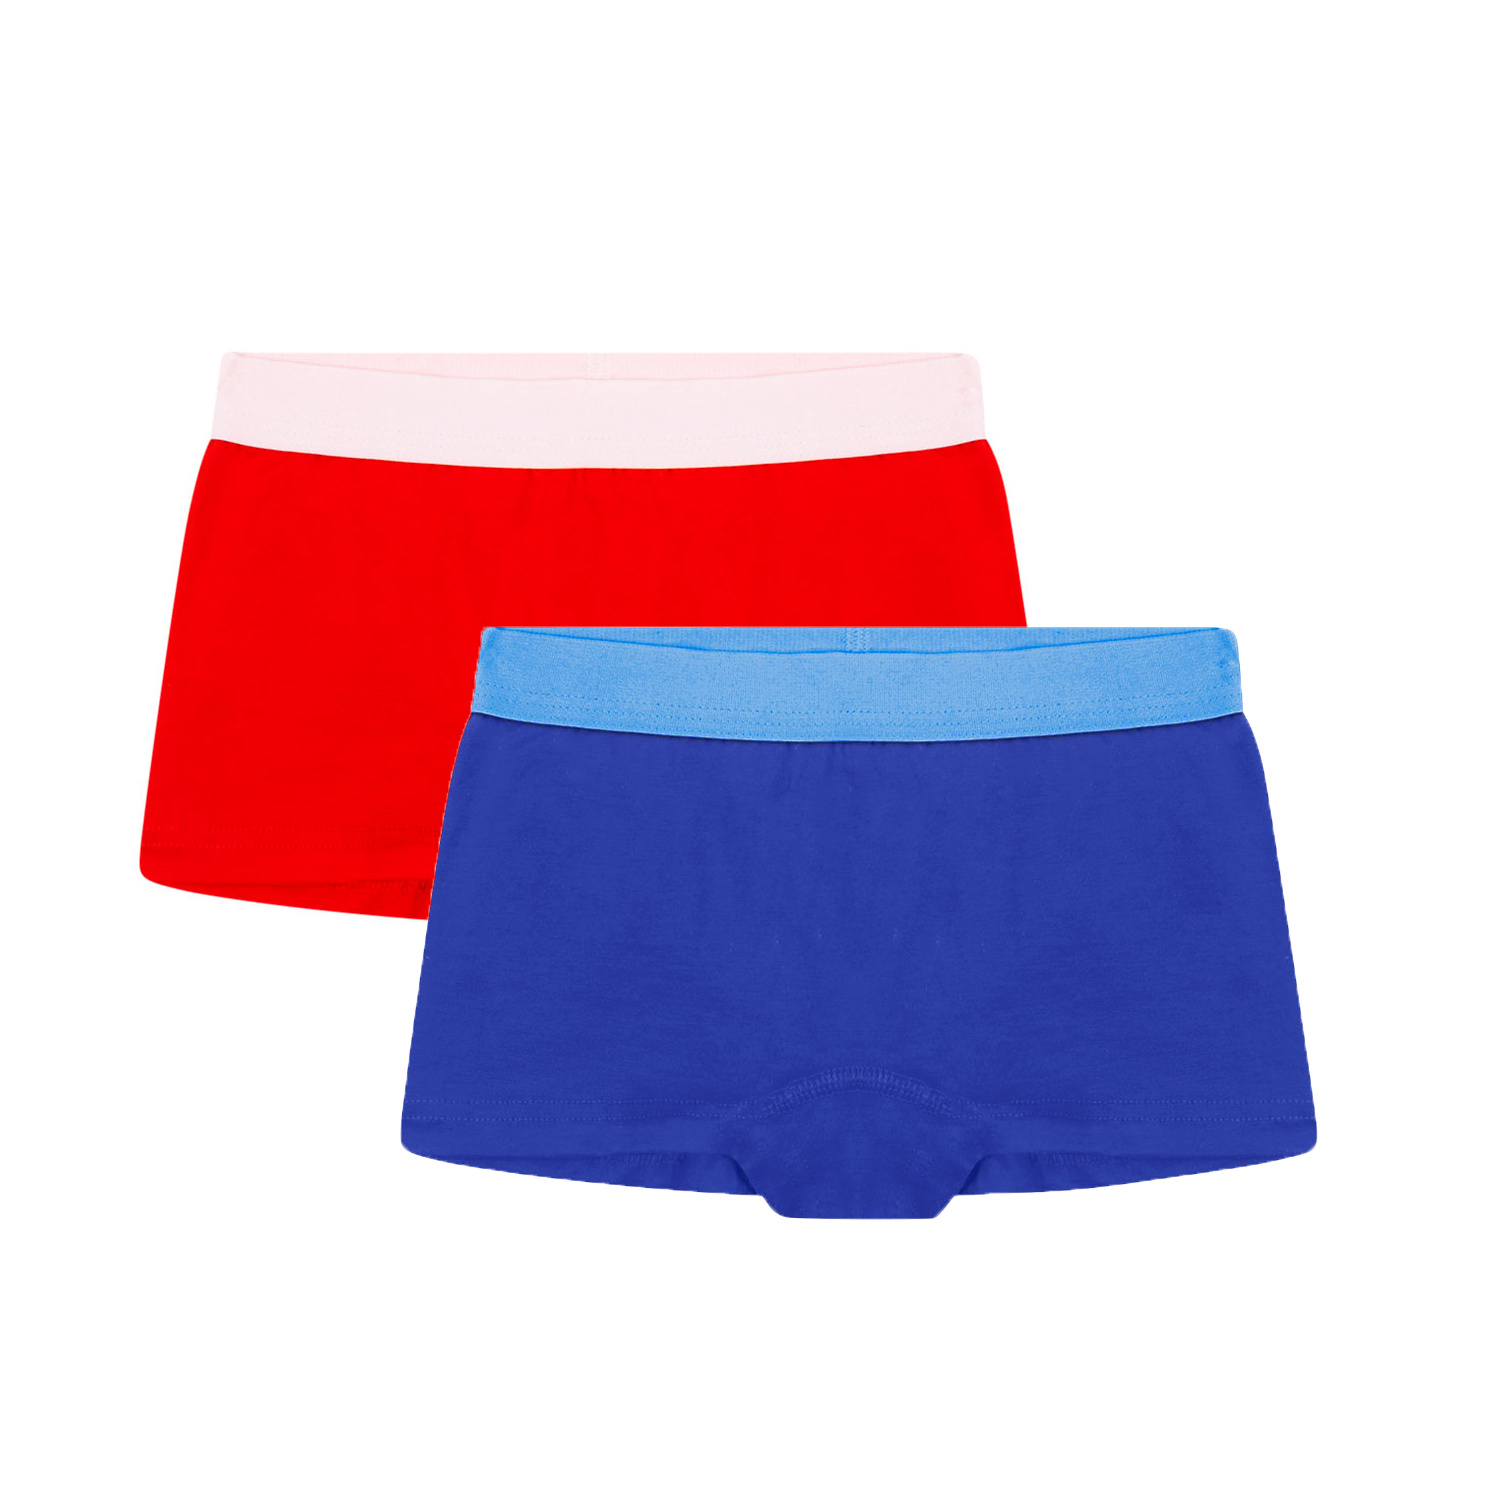 2-pack meisjes hipsters - Rood / Blauw-1